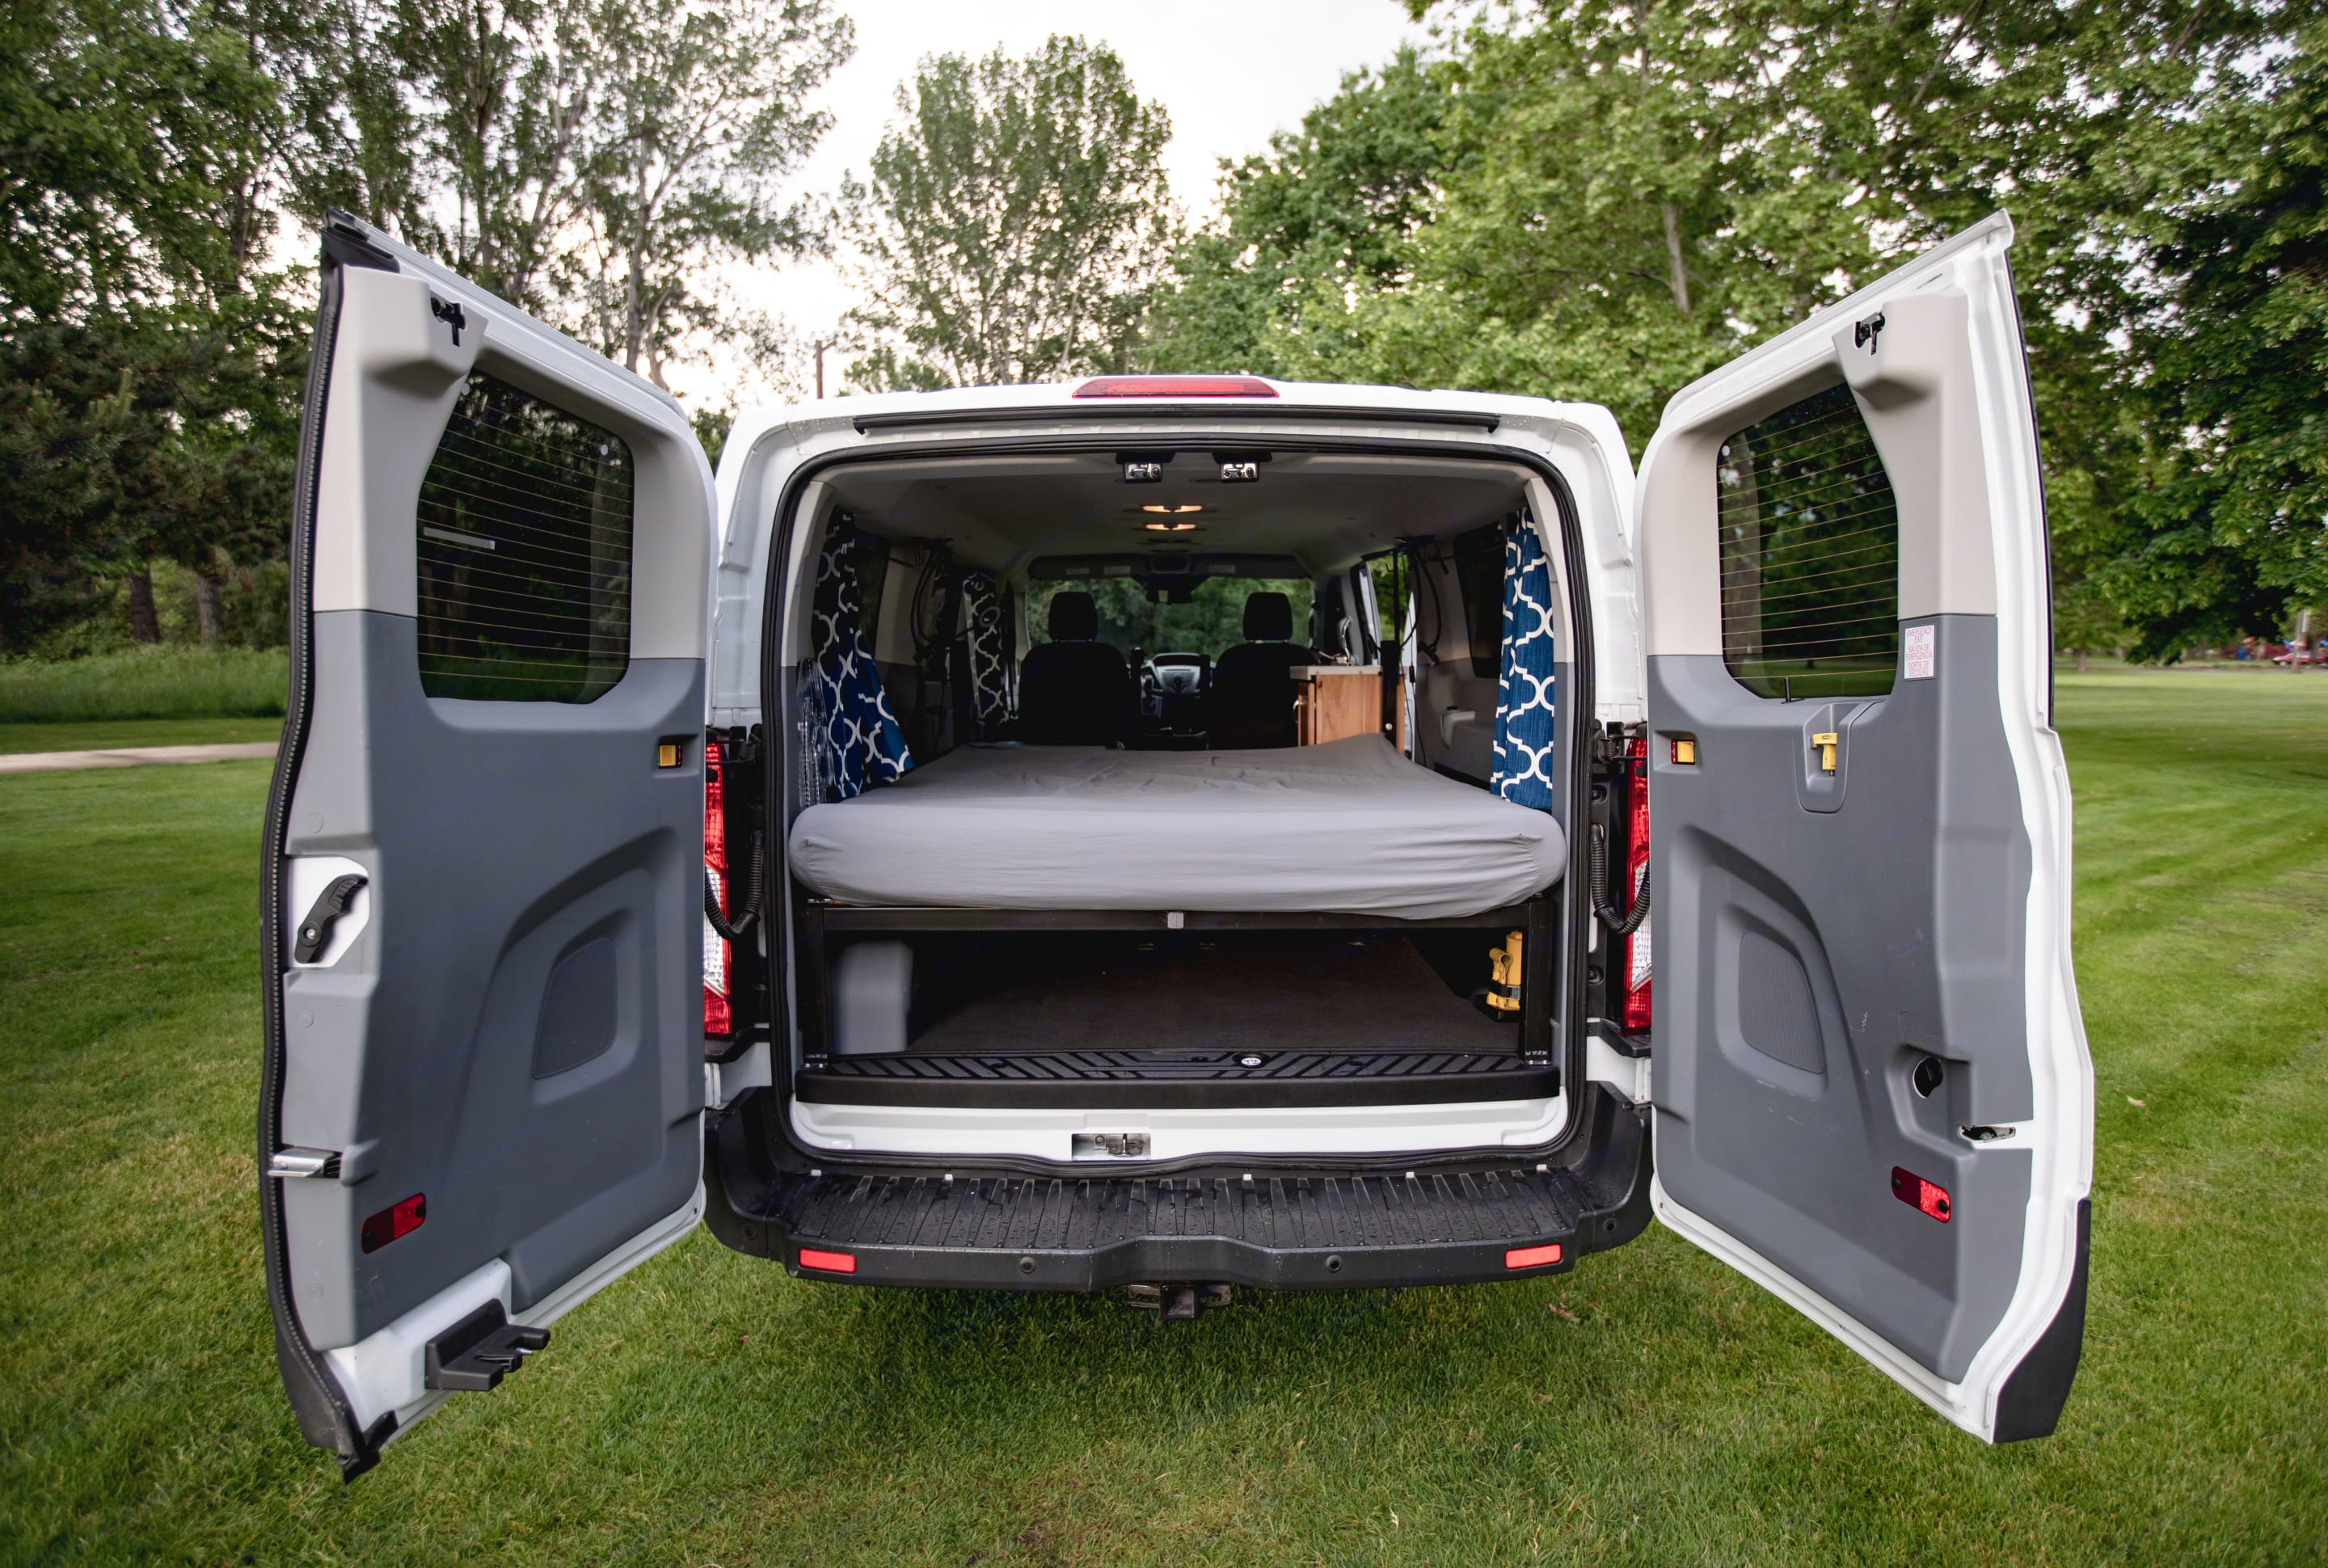 Looking into the back of the Van. Ford Transit 2015